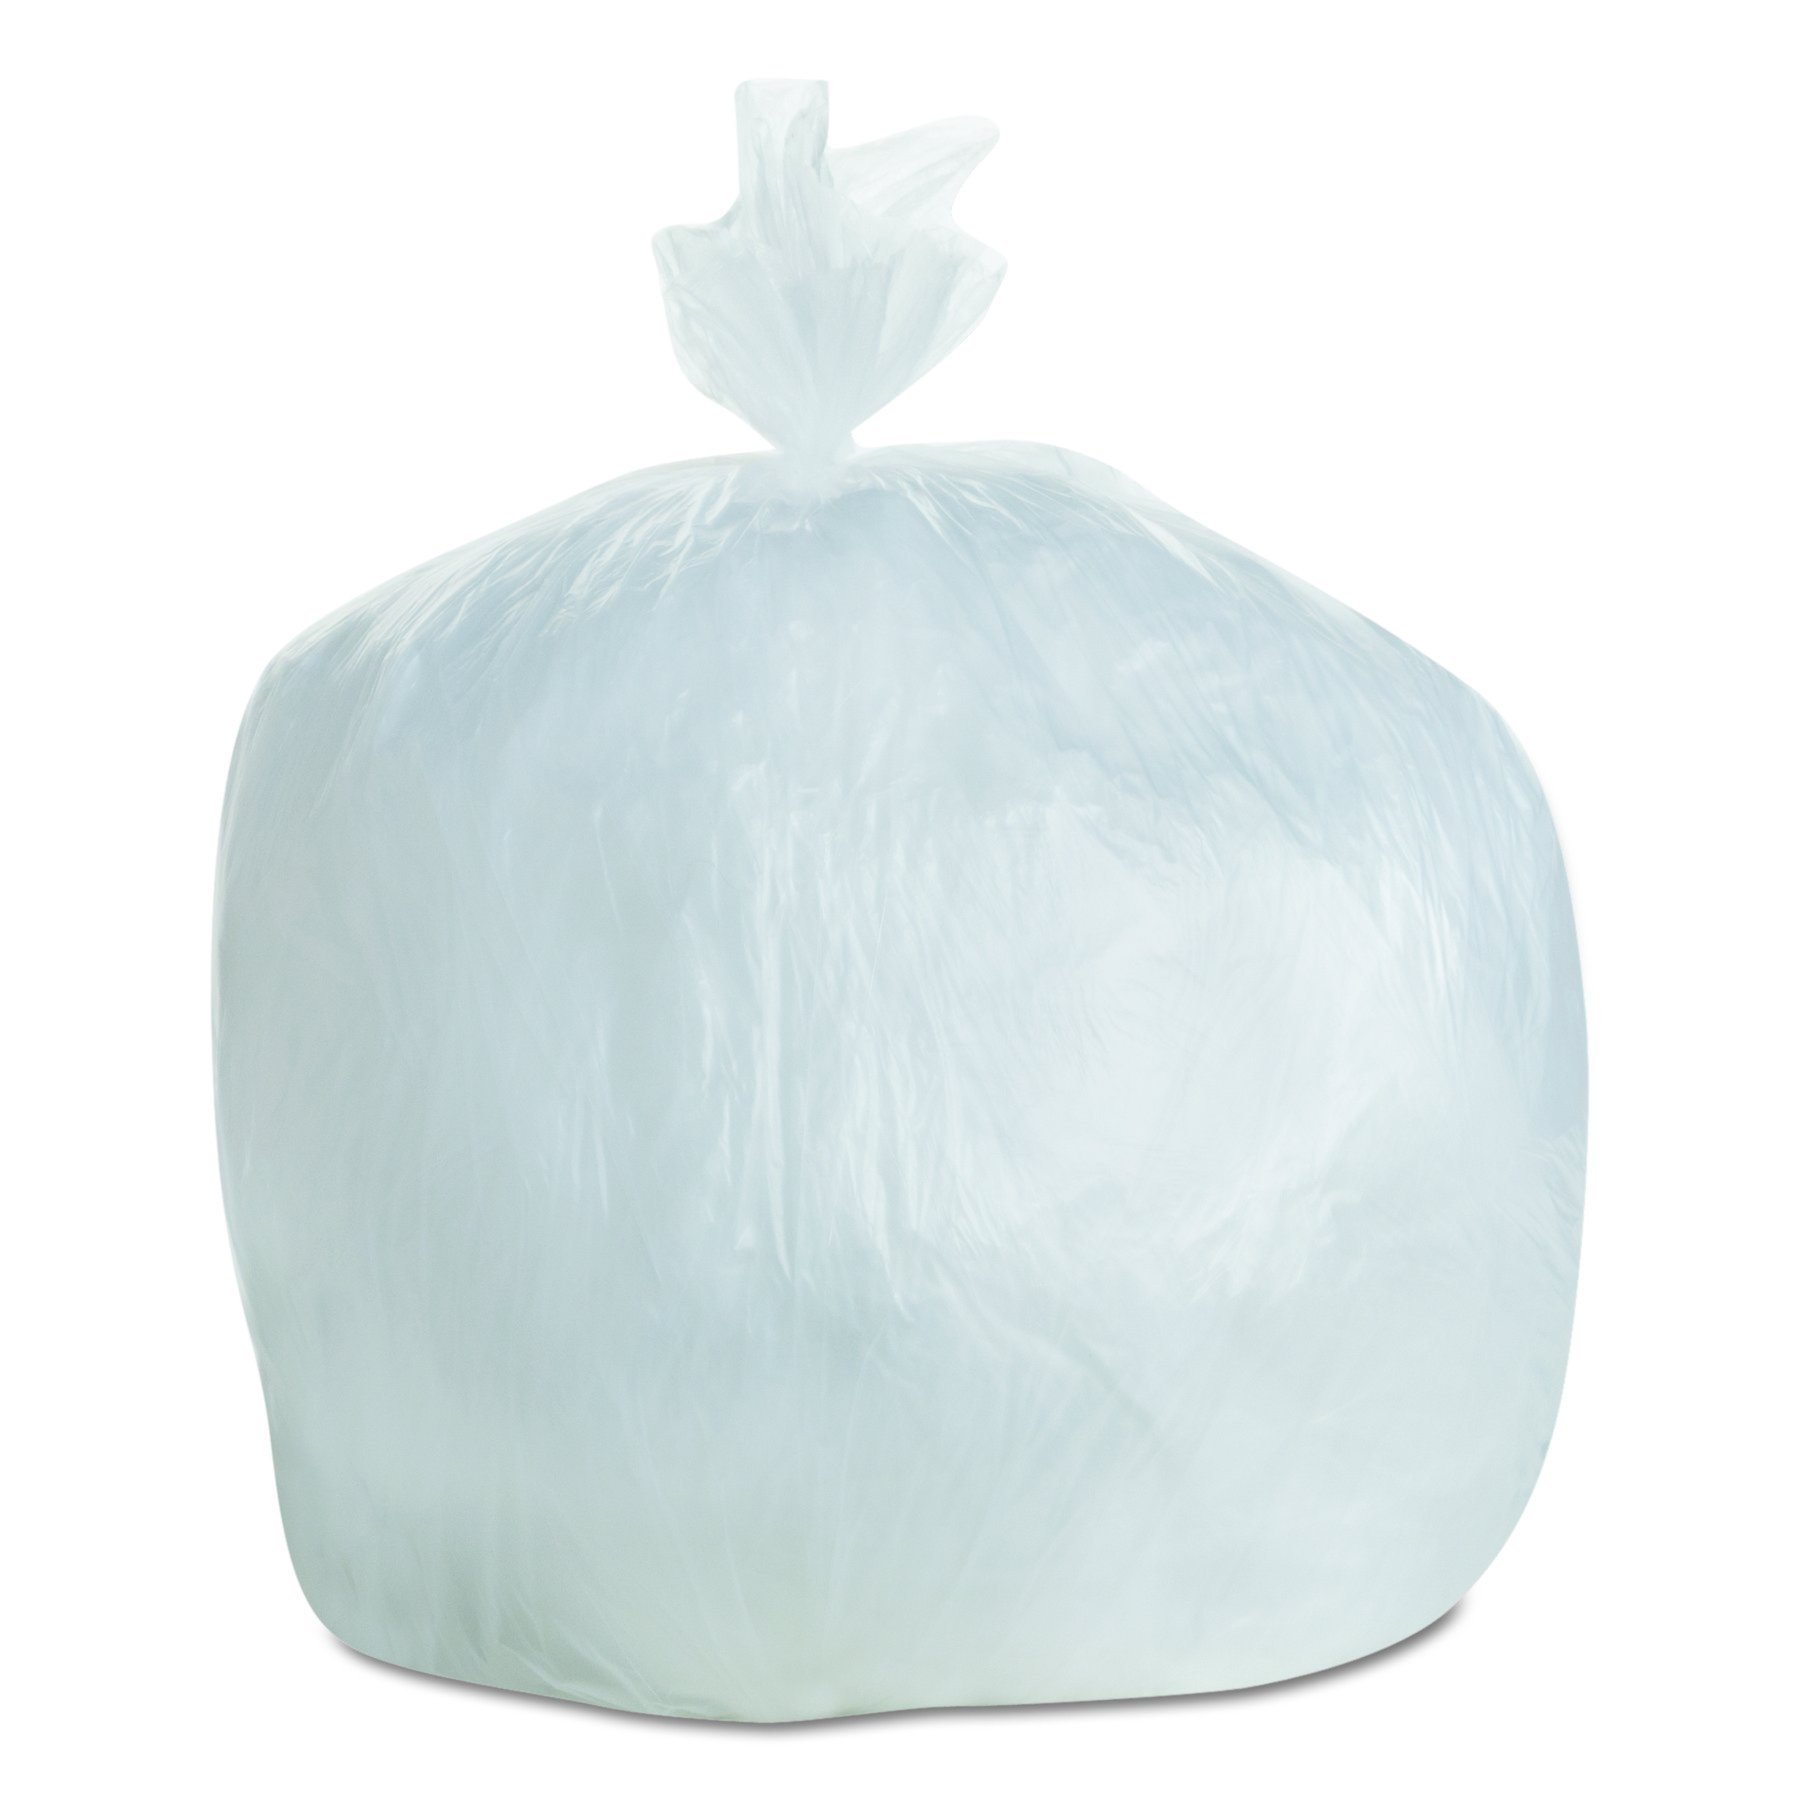 GEN 303610 High-Density Can Liner, 30x36, 20-30 gal, 8 Mic, Natural, 25 Bags Per Roll (Case of 20 Rolls)